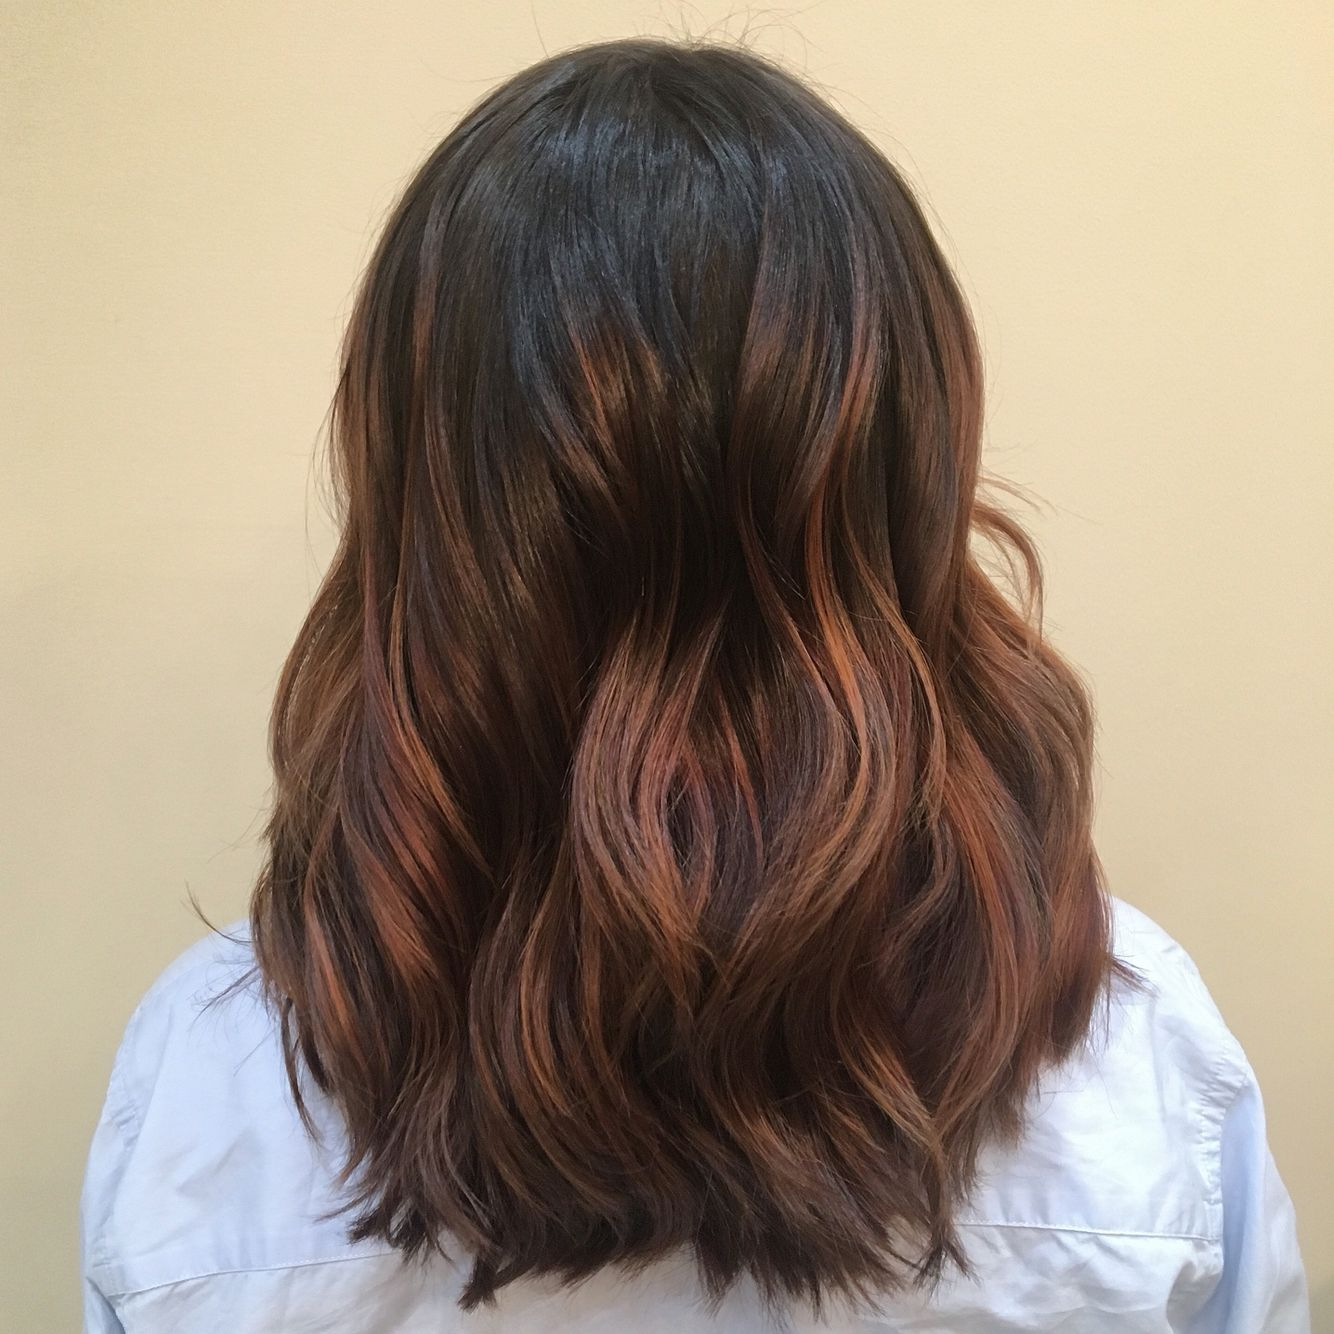 Texturized haircut choppy with balayage hair color dark roots copper